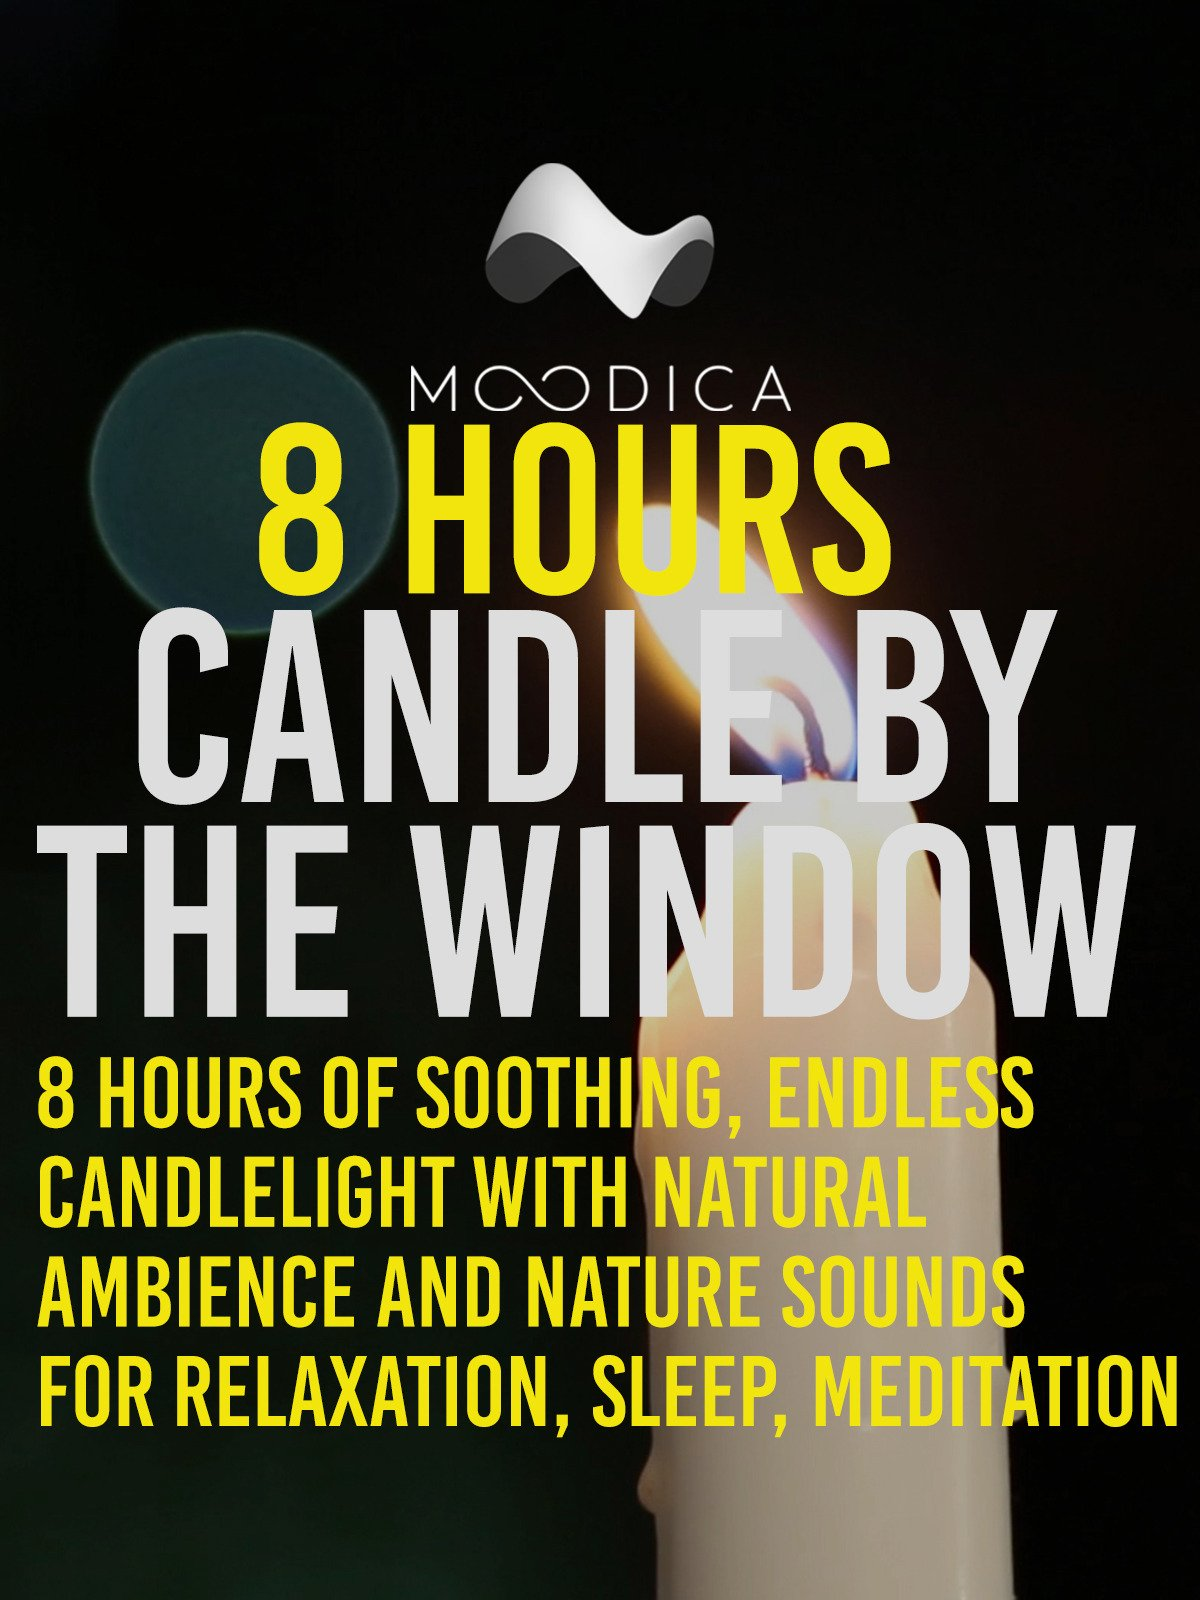 8 Hours: Candle By The Window: 8 Hours of Soothing Endless Candlelight with Natural Sounds Ambience and Nature Sounds for Relaxation, Sleep, Meditation